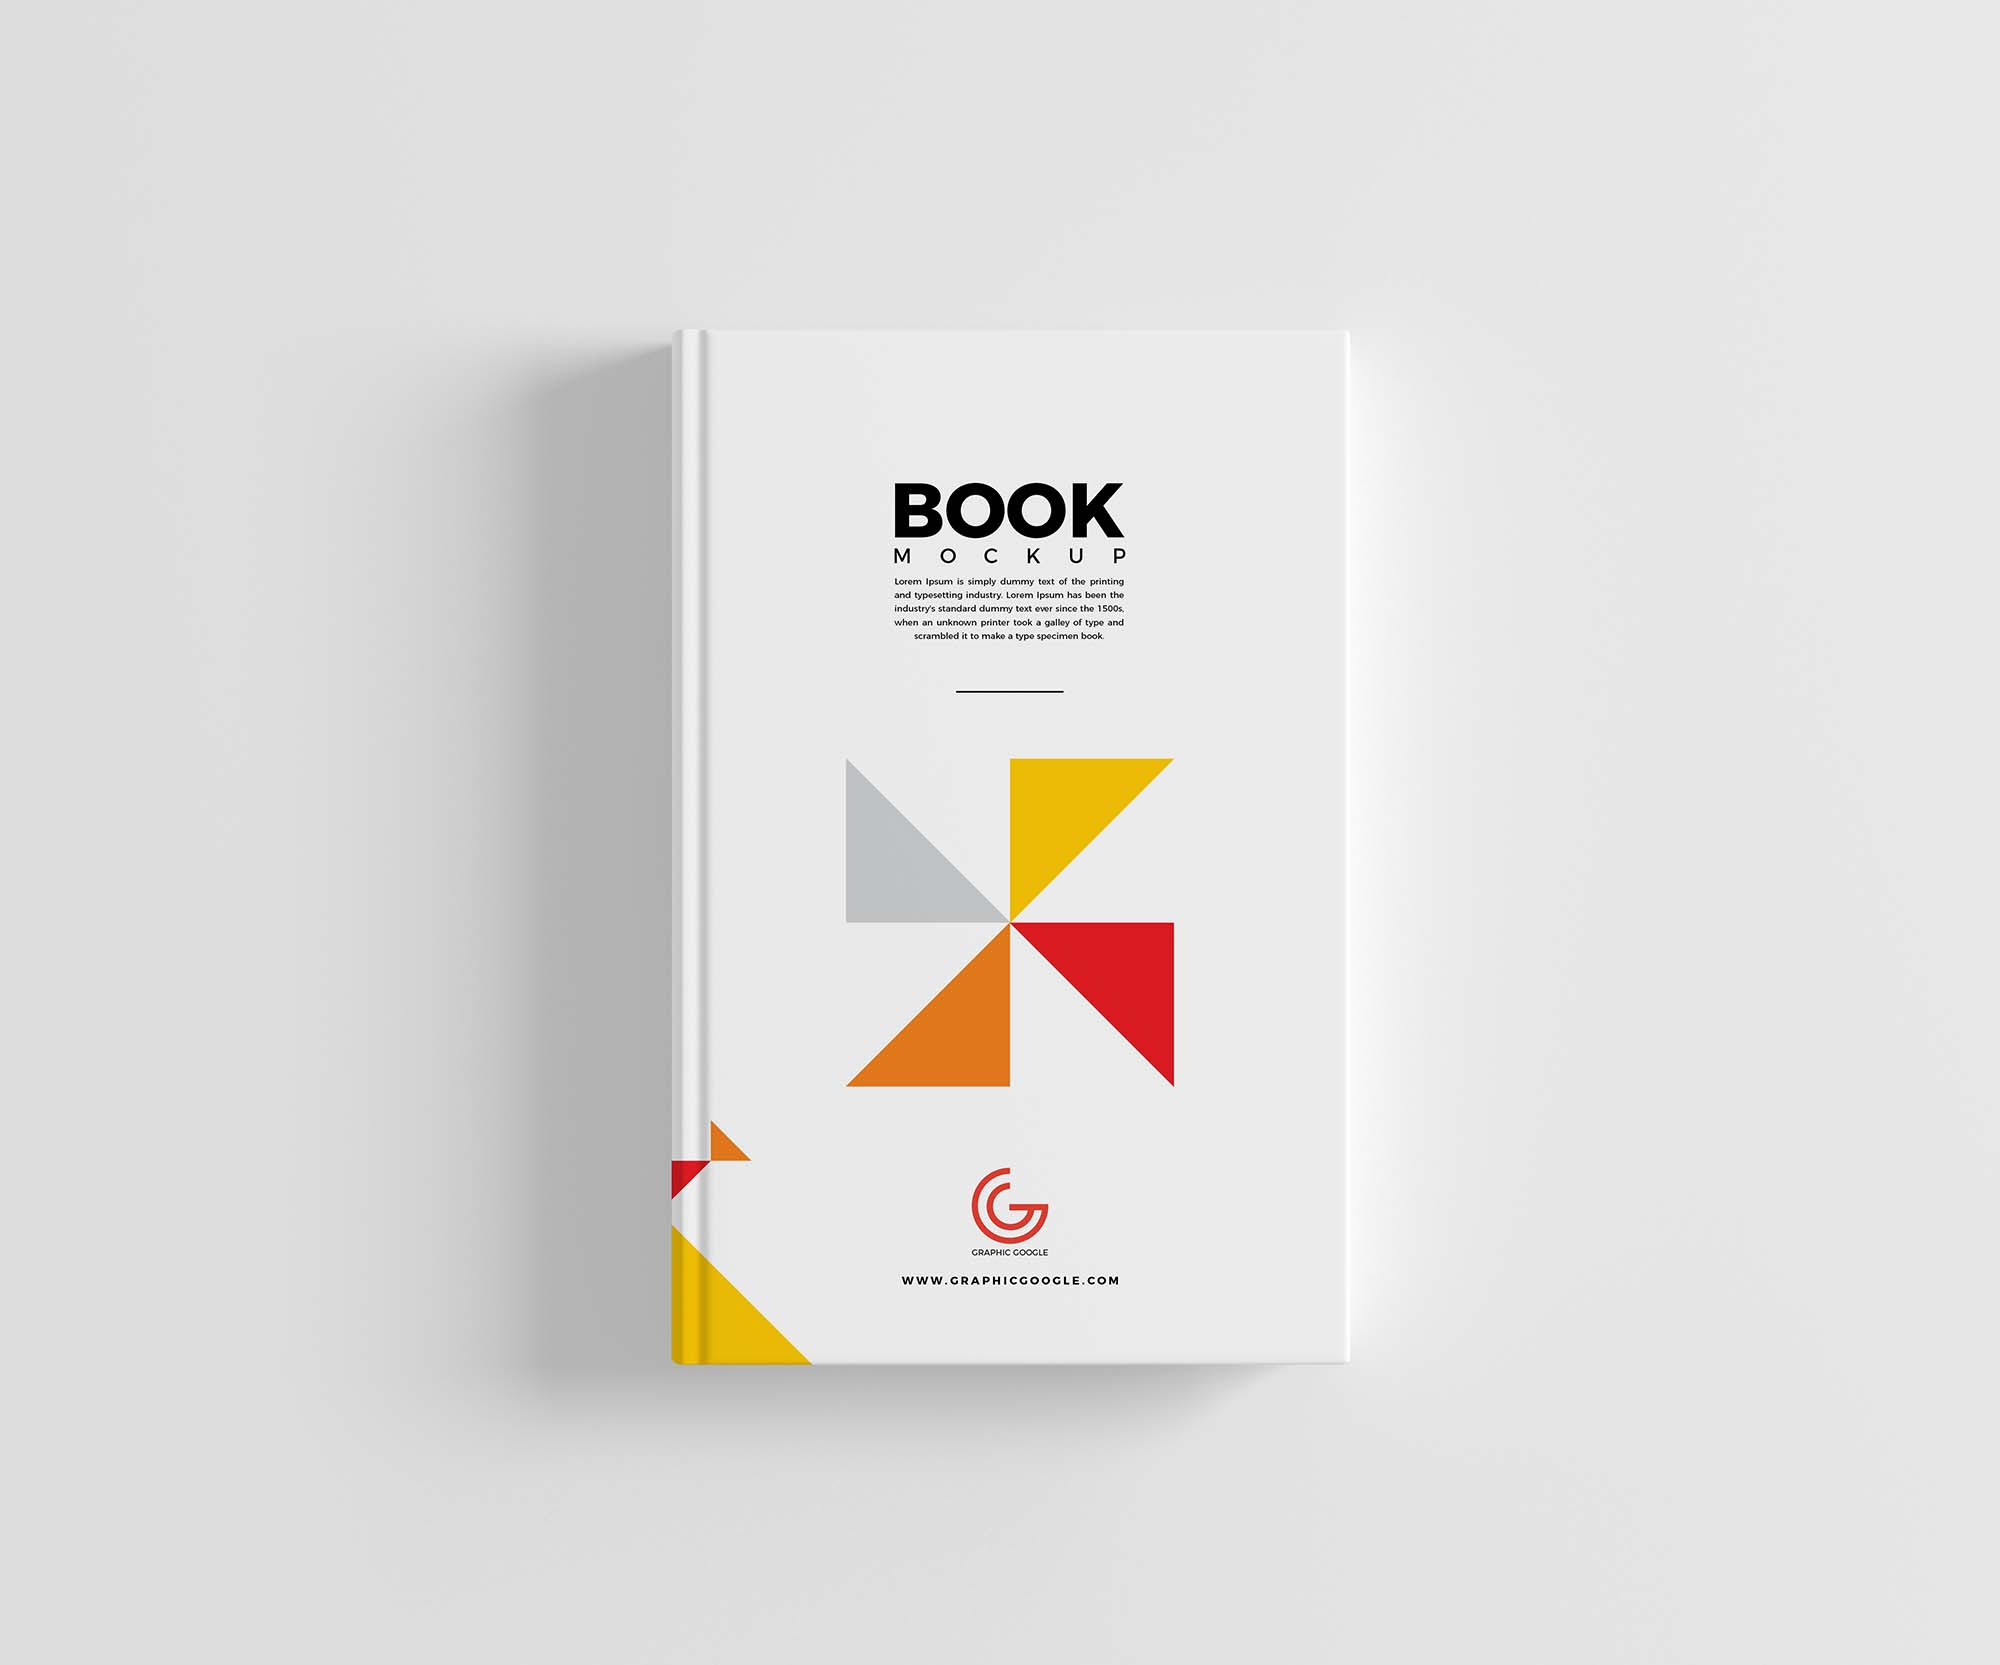 Mockup Report Psd Download Free Book Cover Mockup Psd Psd Graphic Files